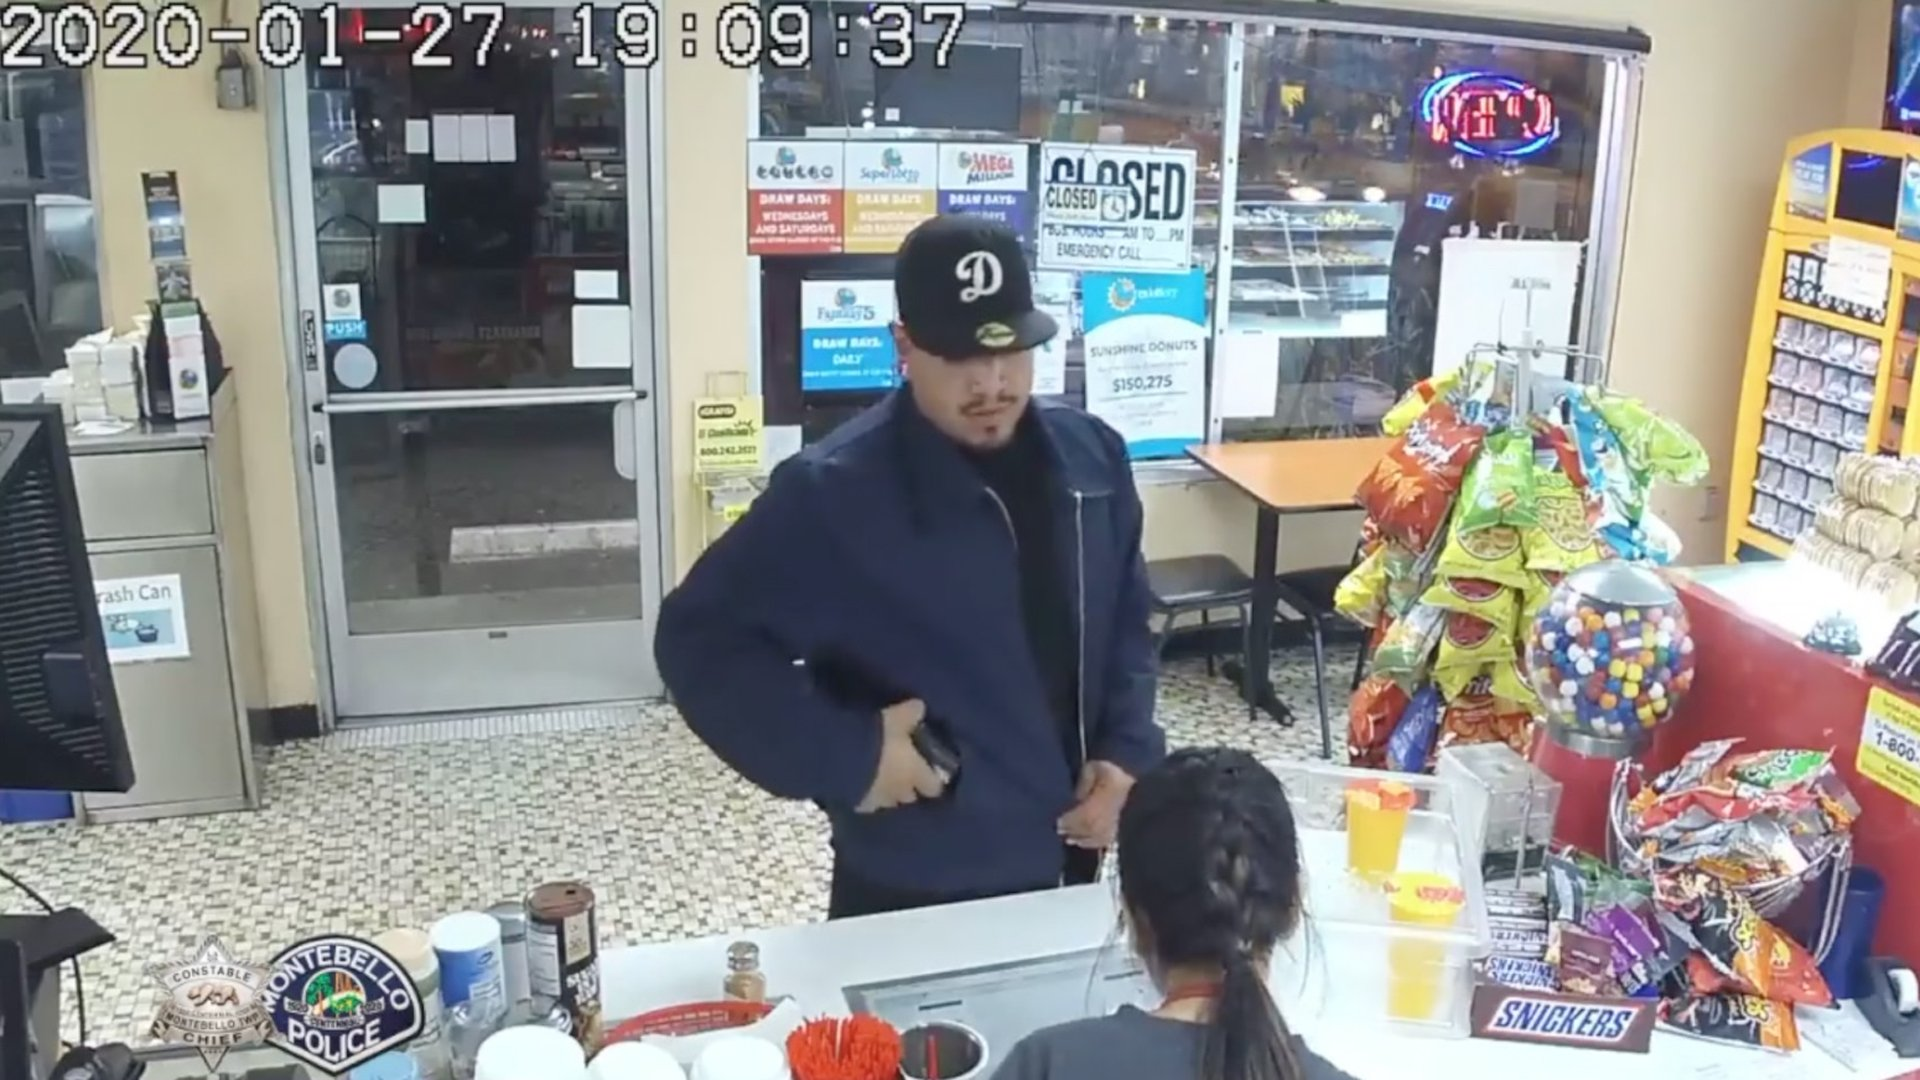 Detectives are seeking the man pictured in this surveillance photo in connection with an armed robbery at a Montebello donut shop on Jan. 27, 2020. (Credit: Montebello Police Department)